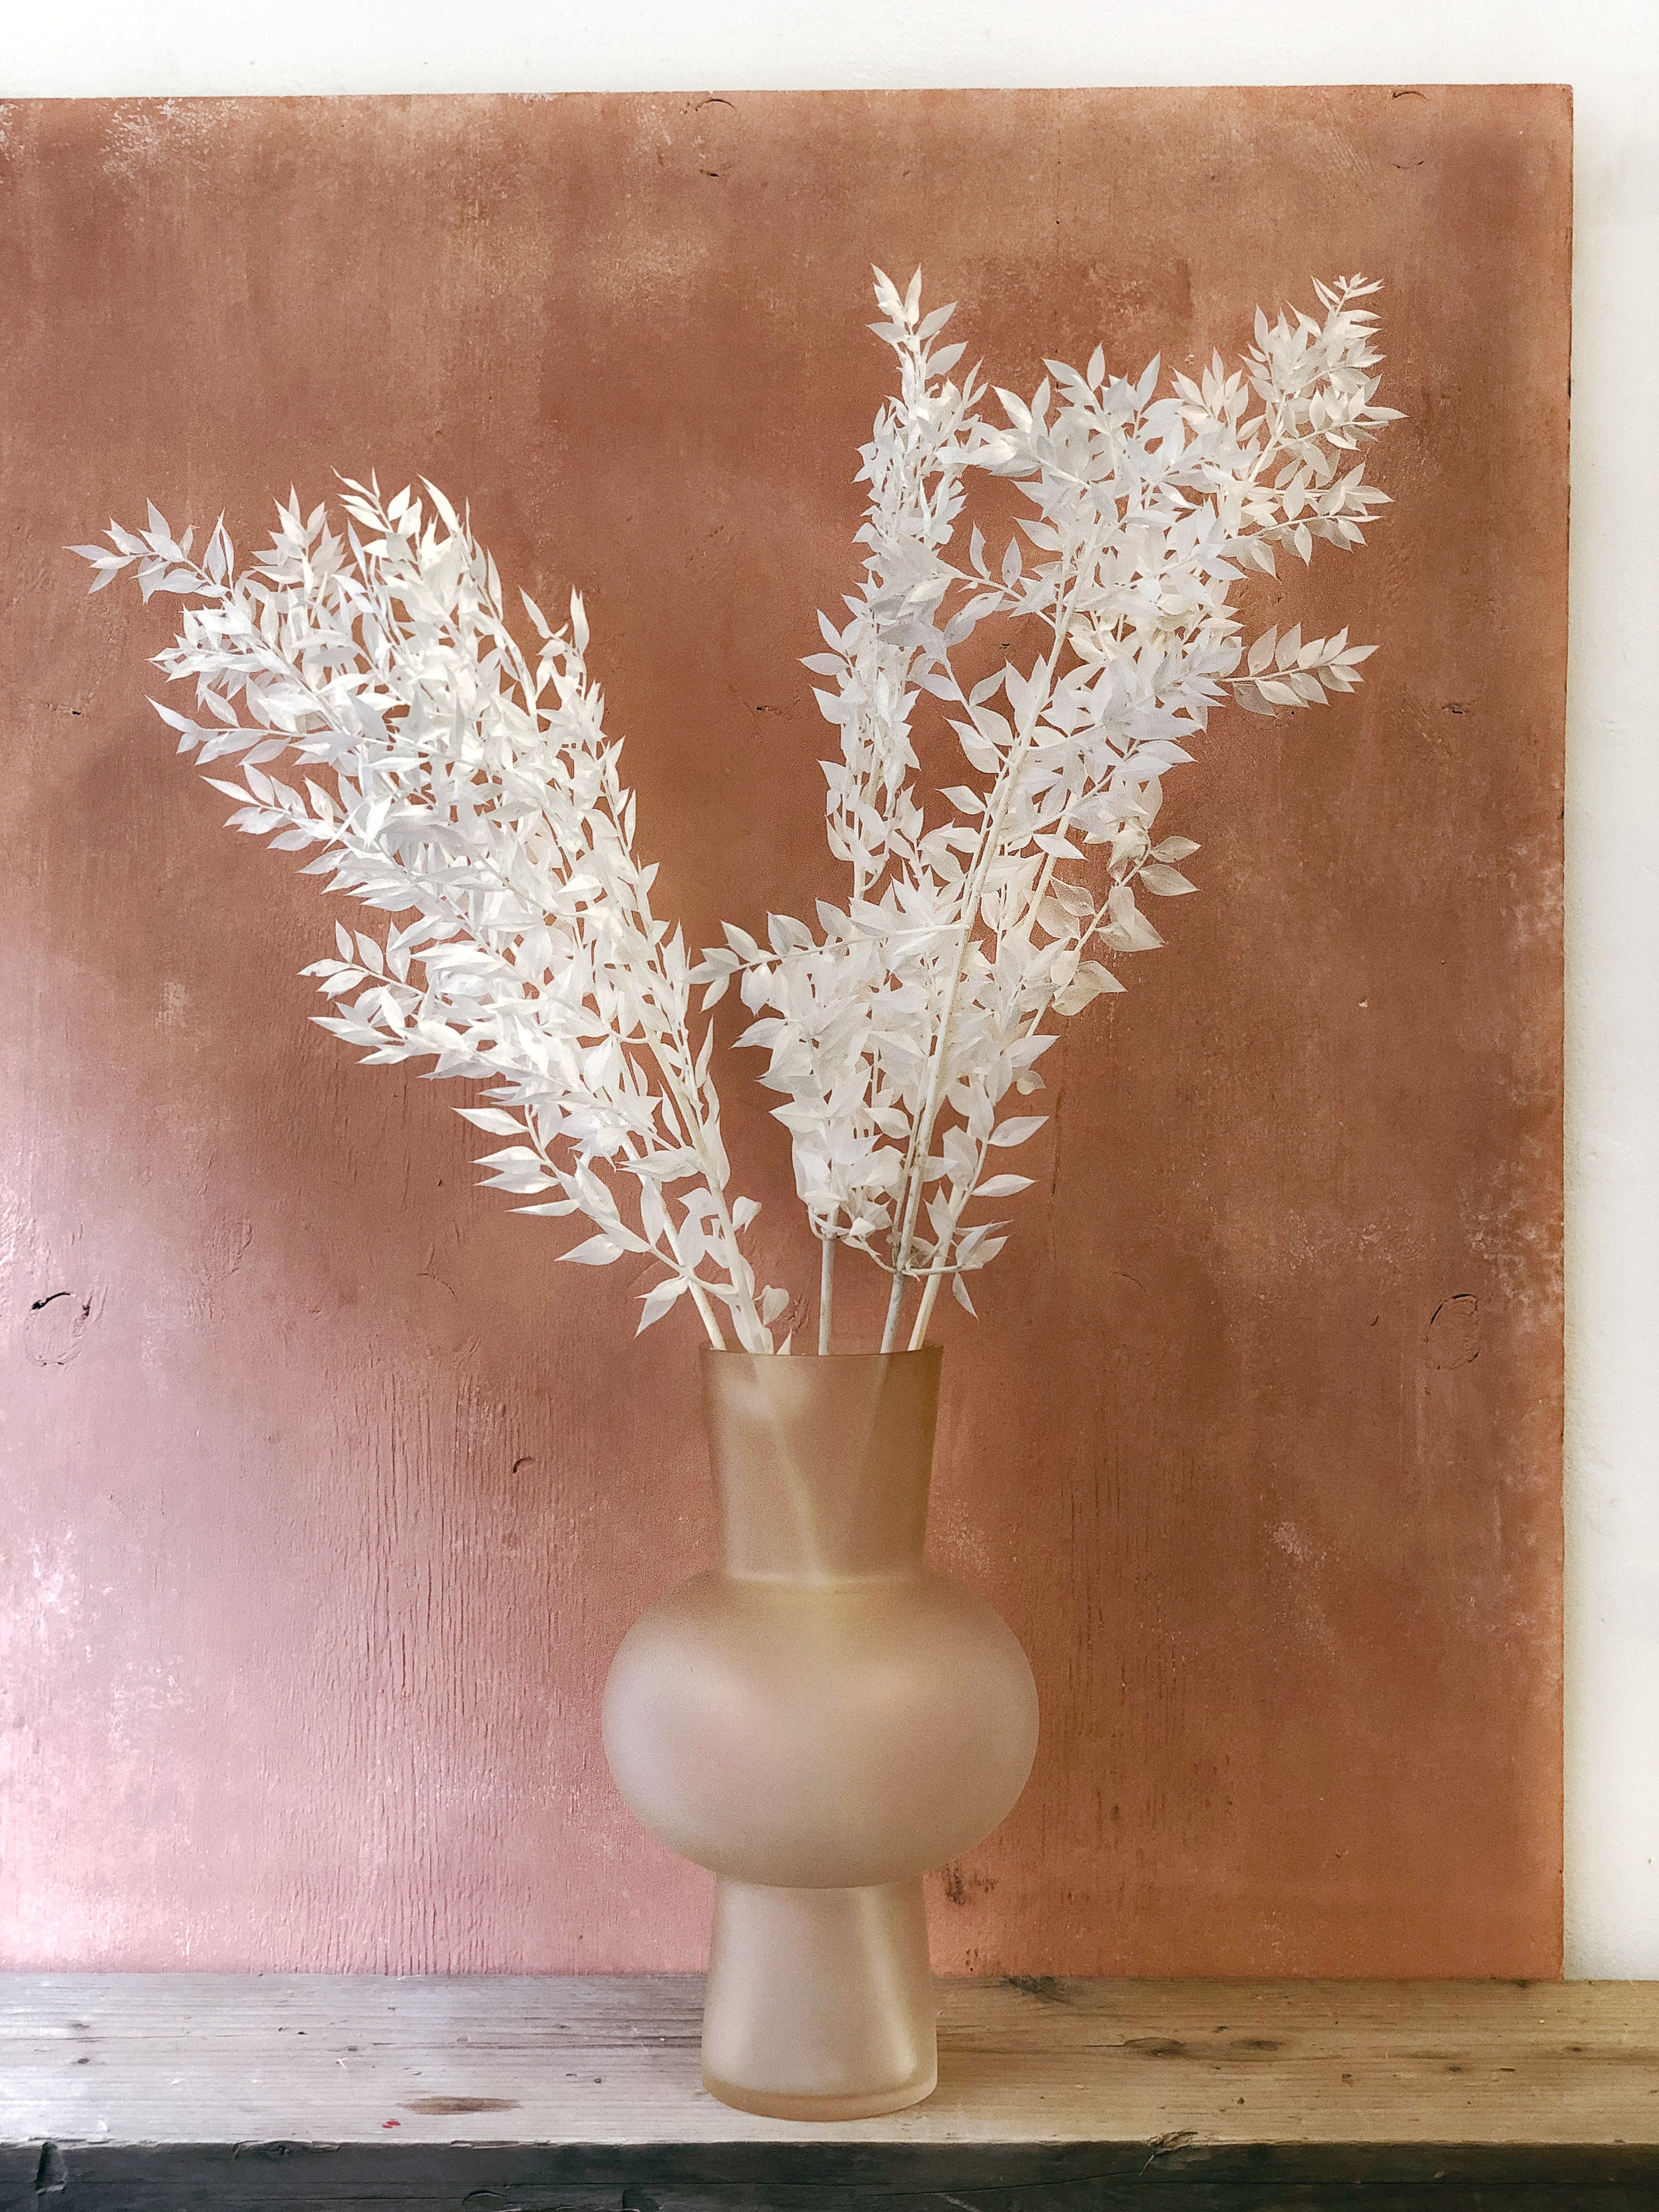 Bleached ruscus